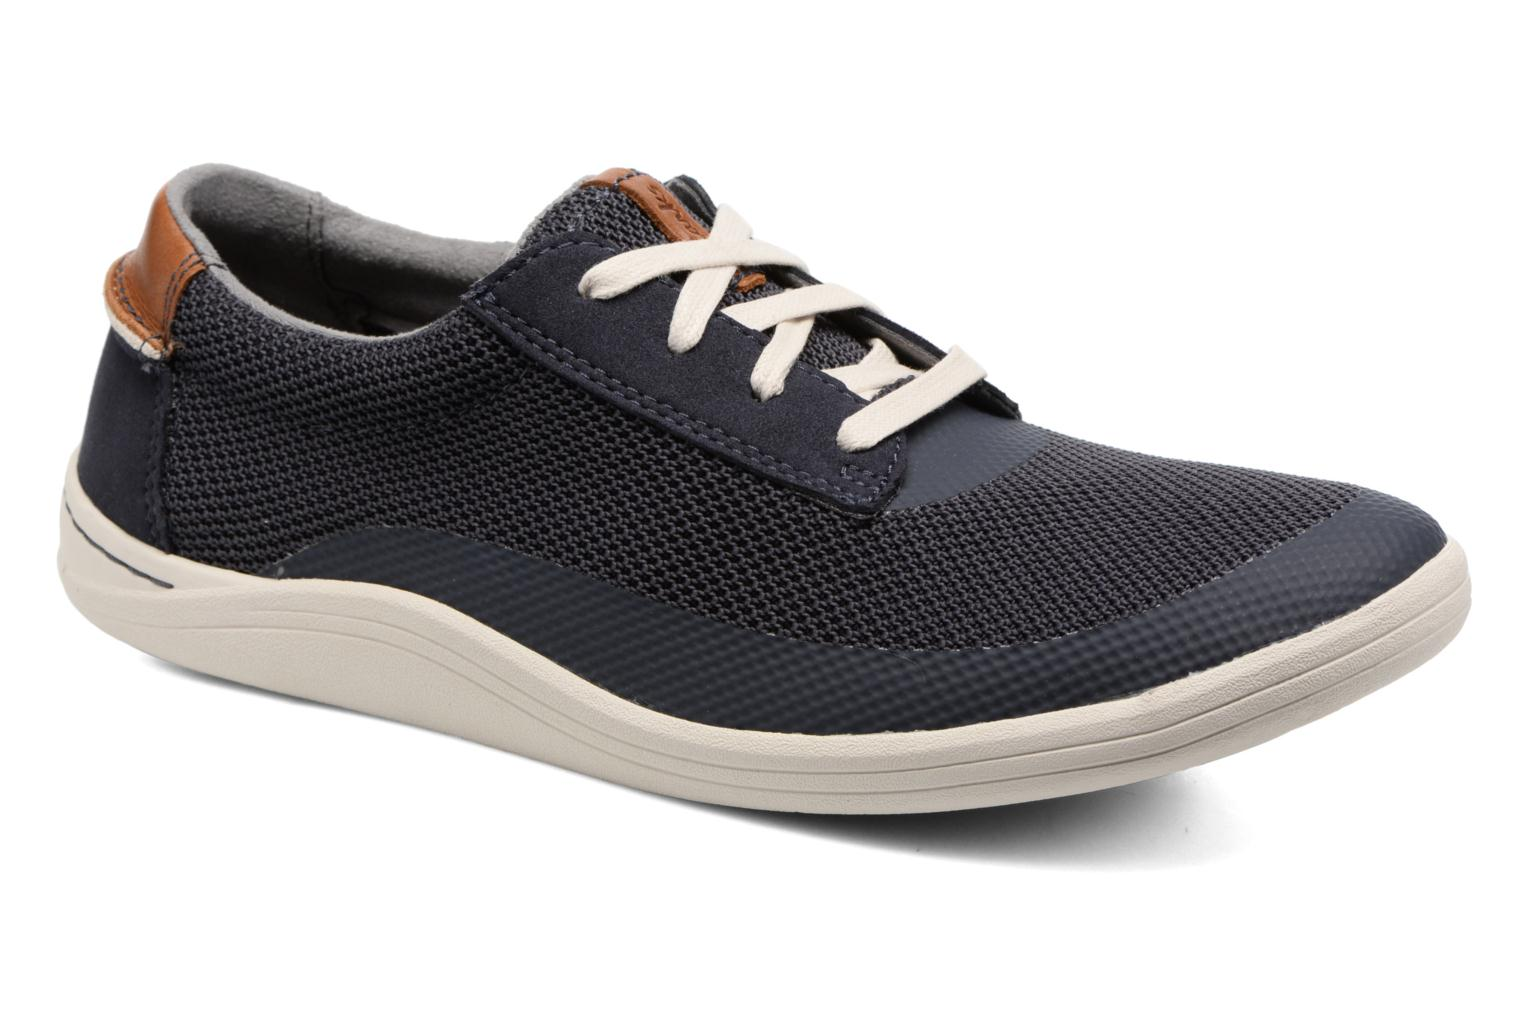 Mapped Edge by Clarks